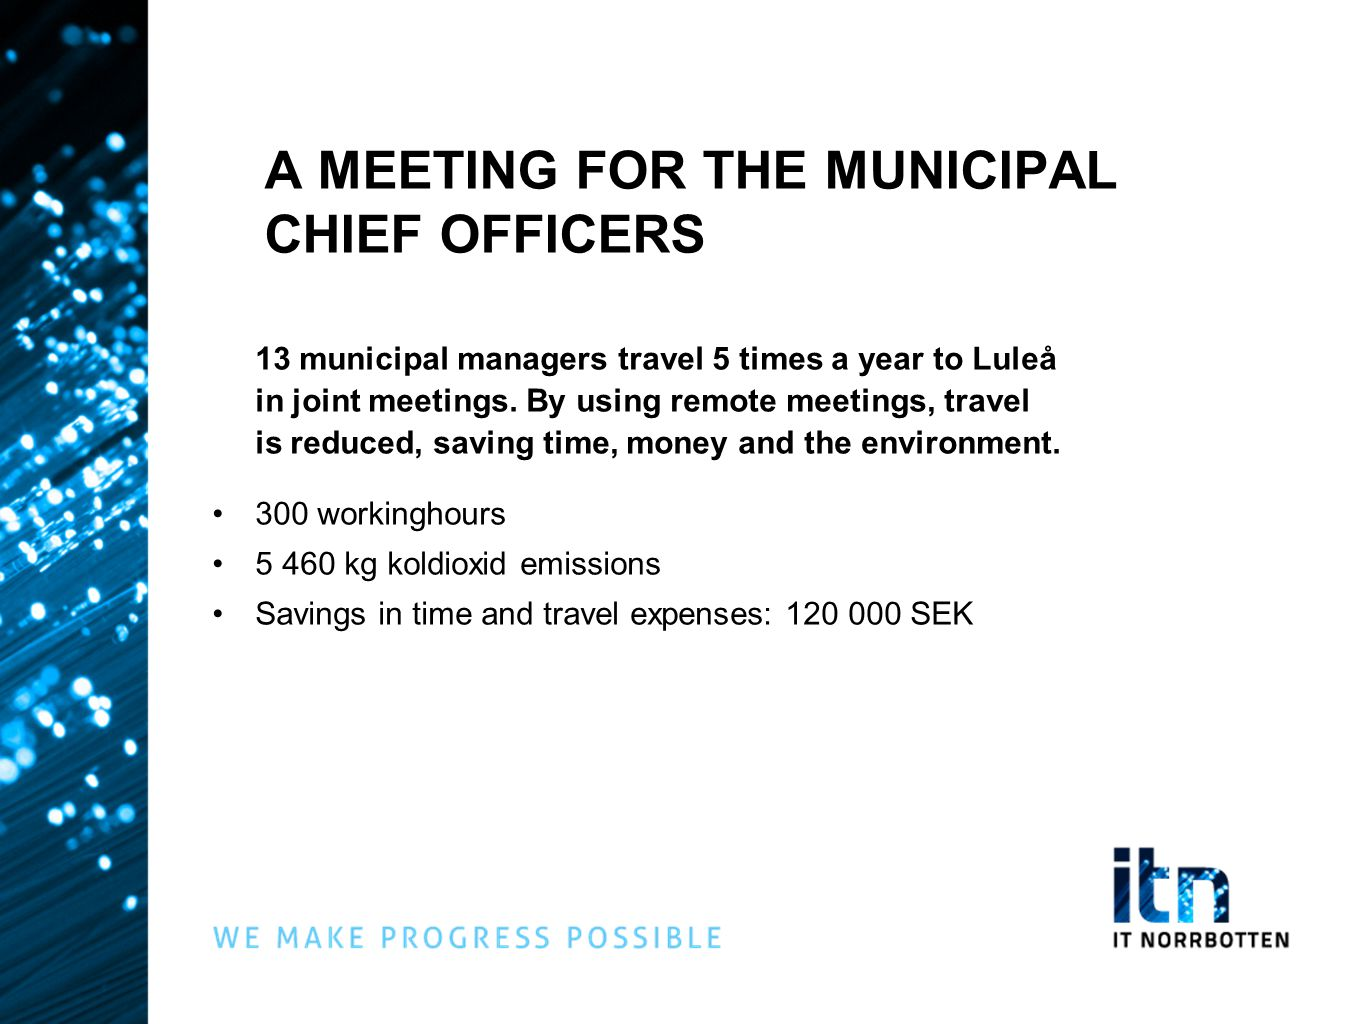 A MEETING FOR THE MUNICIPAL CHIEF OFFICERS 13 municipal managers travel 5 times a year to Luleå in joint meetings. By using remote meetings, travel is